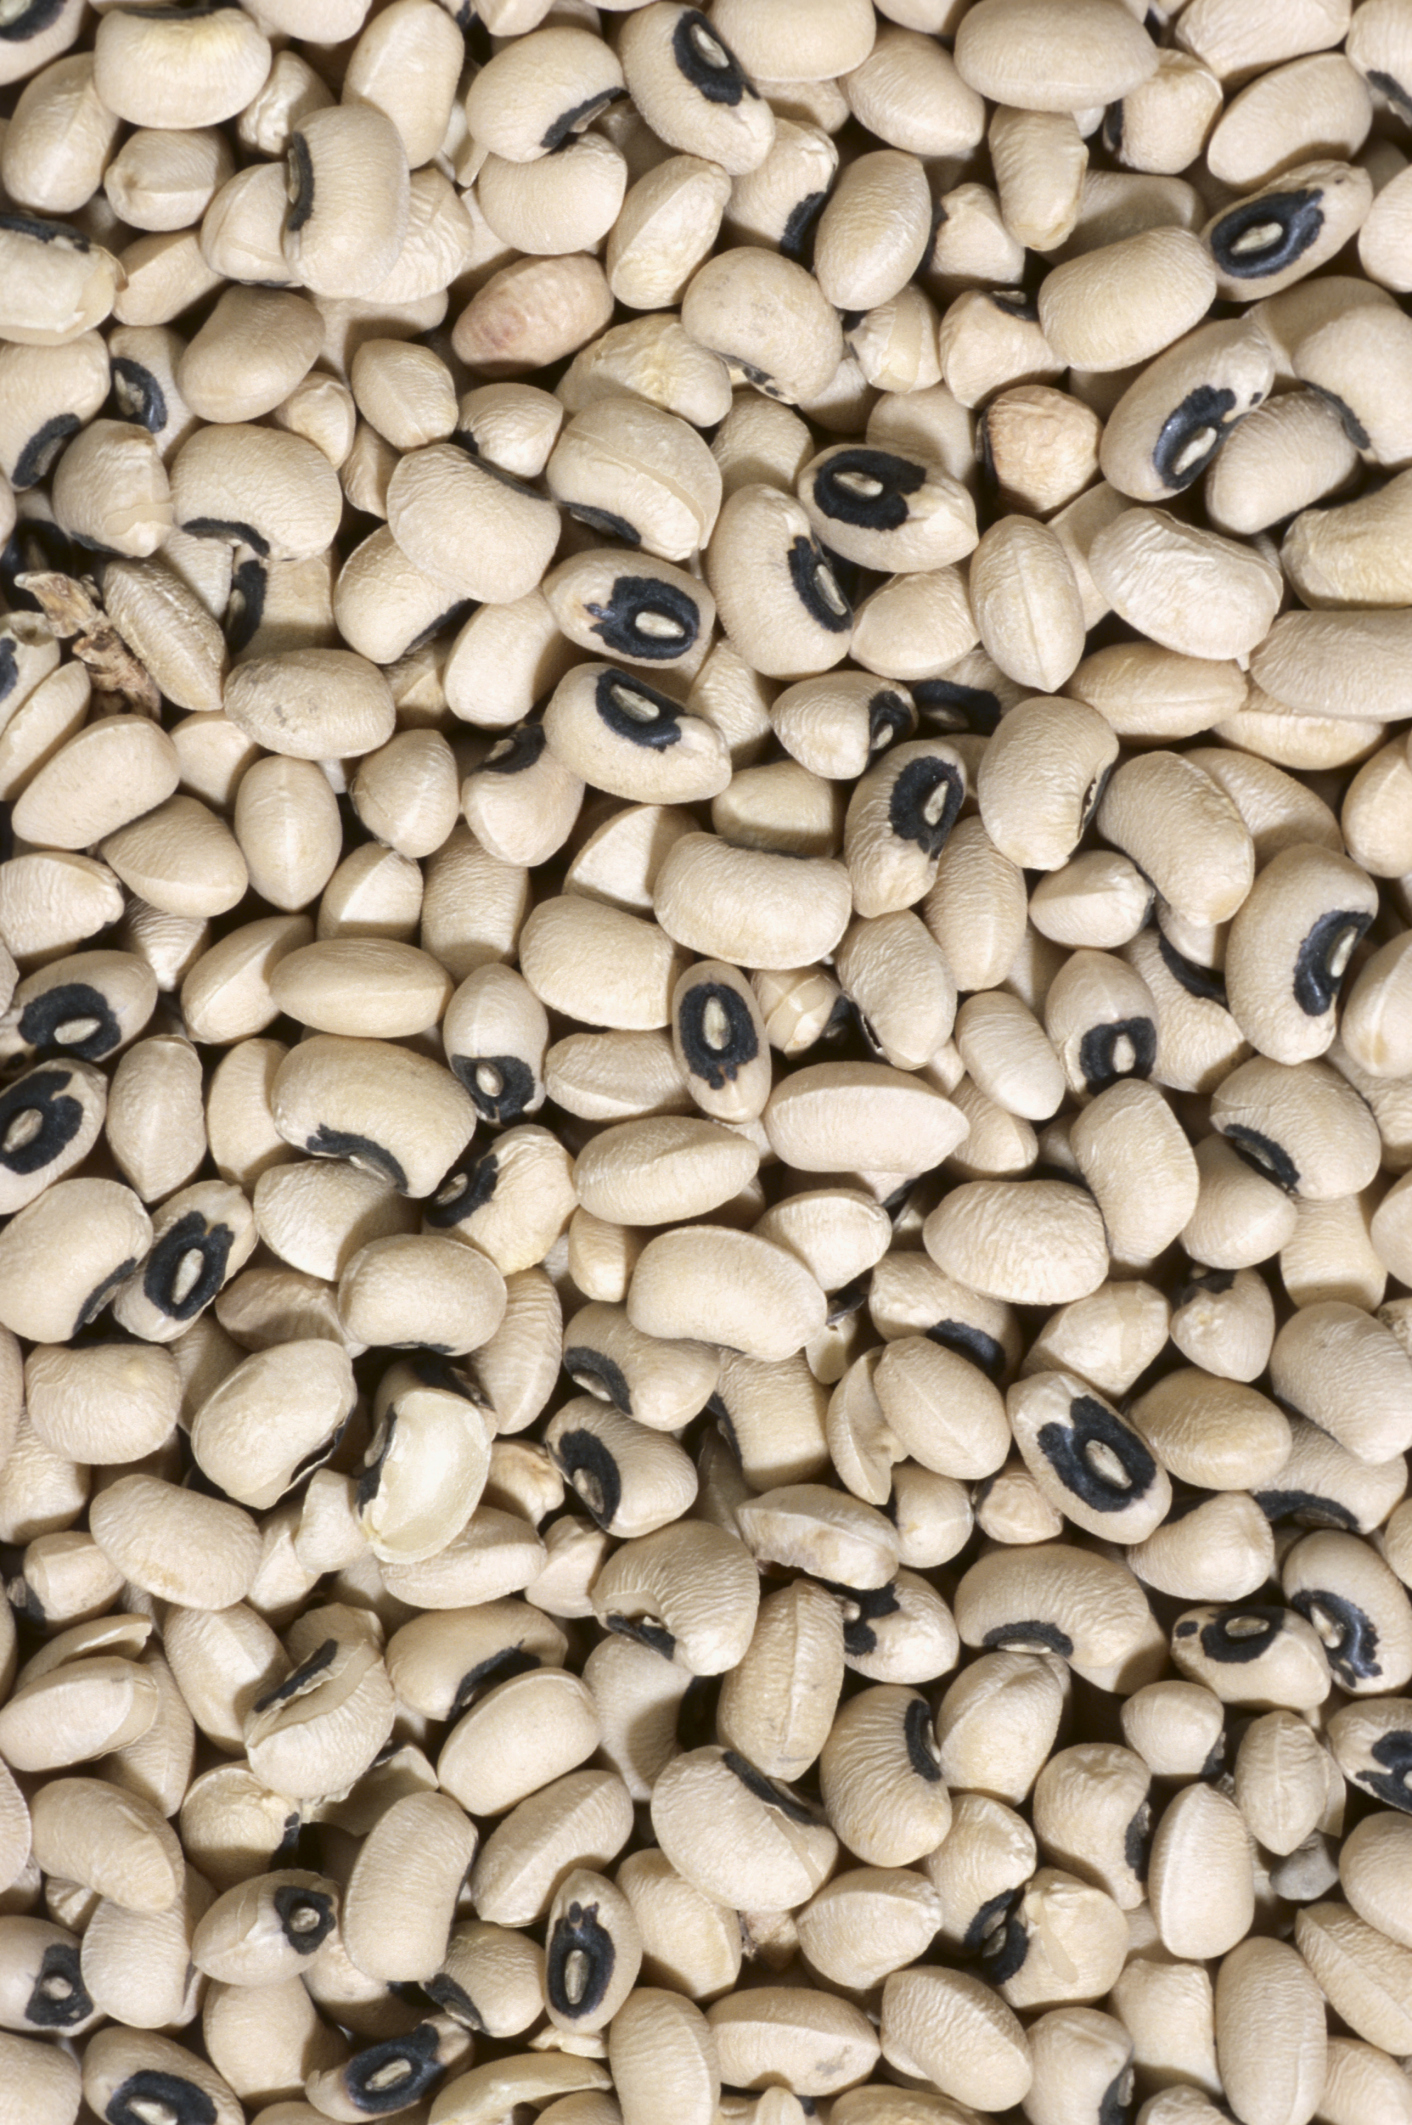 Combining black-eyed peas and rice provides all essential amino acids.